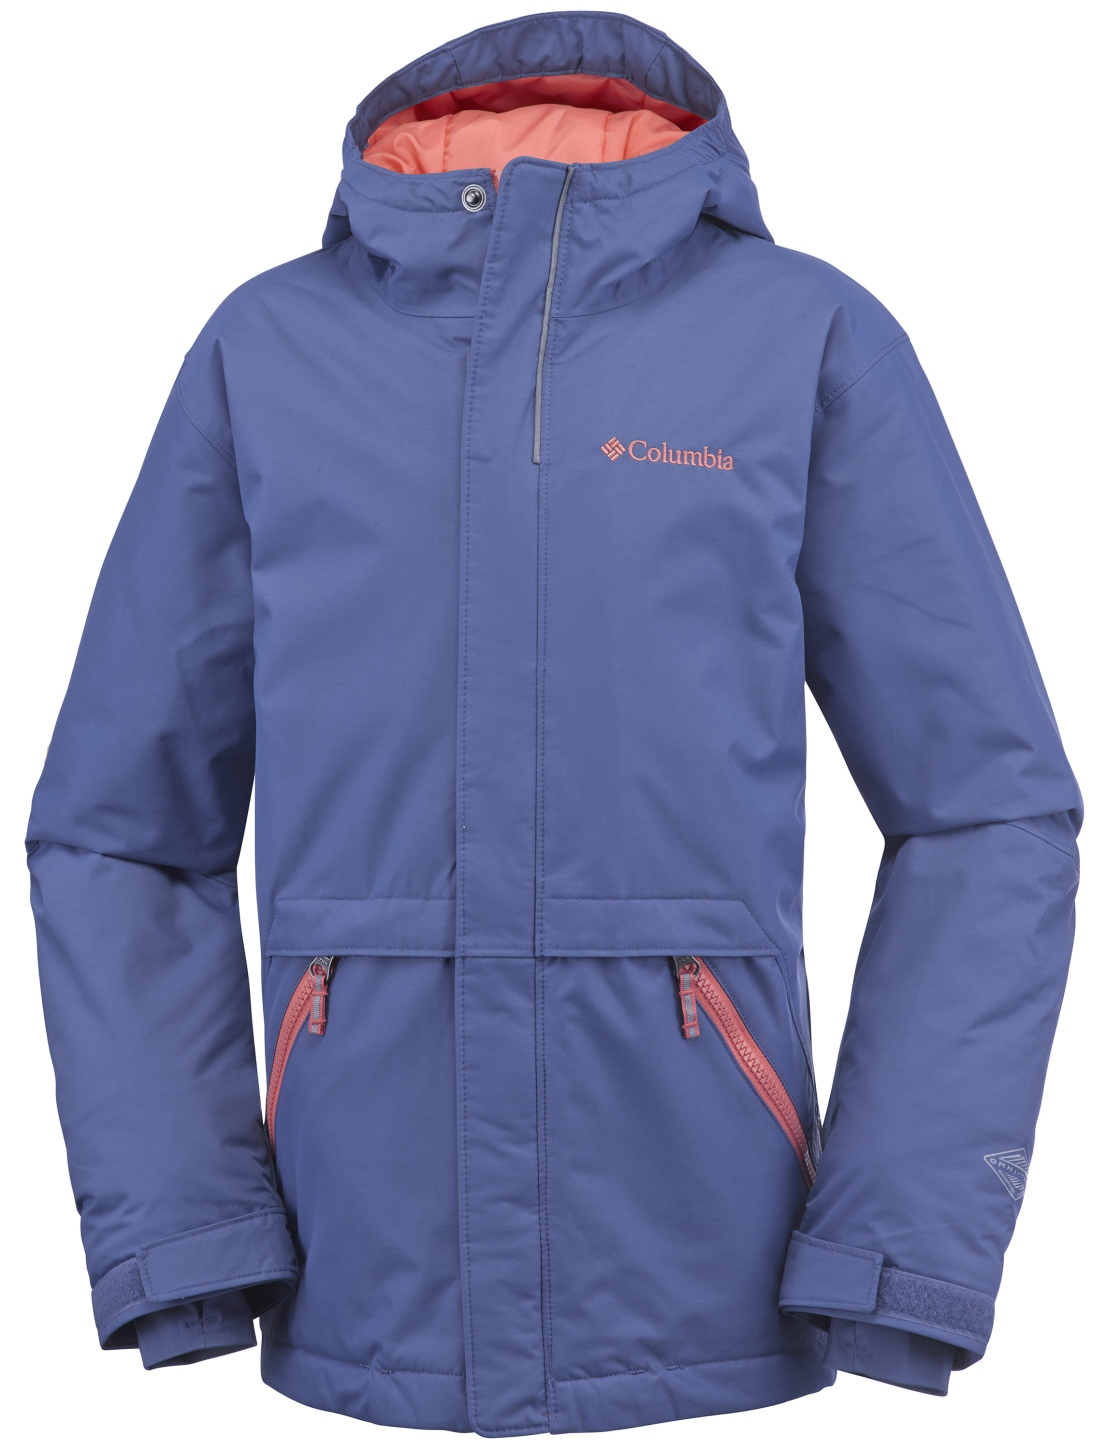 Columbia Boys' Slope Star Jacket Bluebell-30